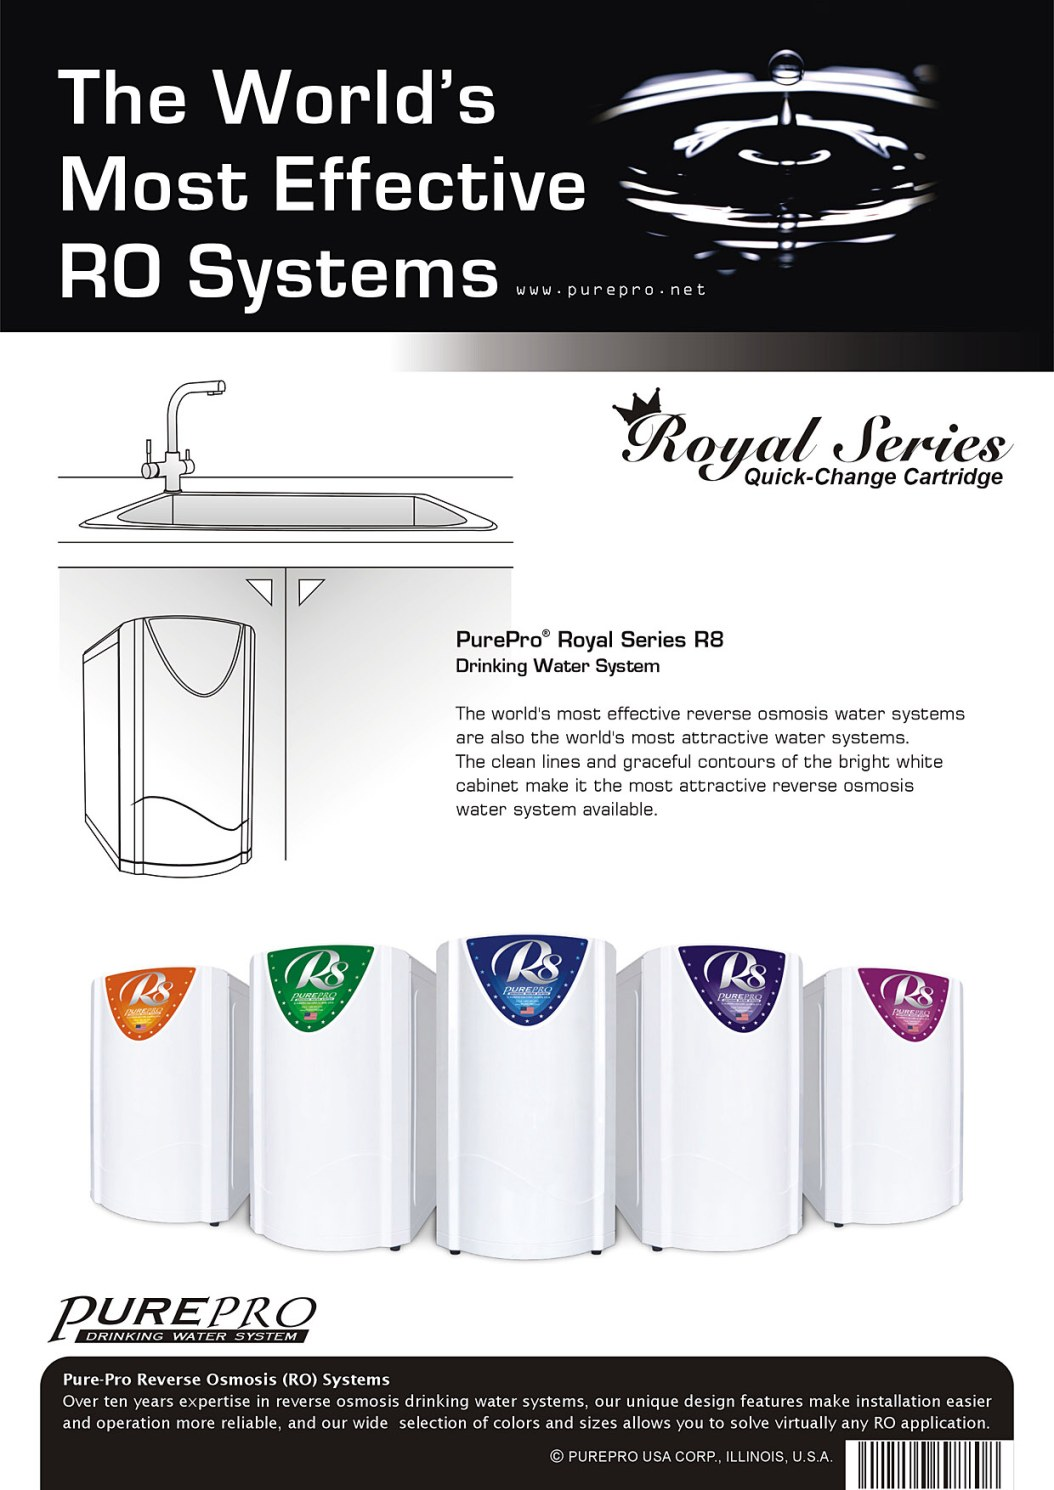 PurePro Royal Series